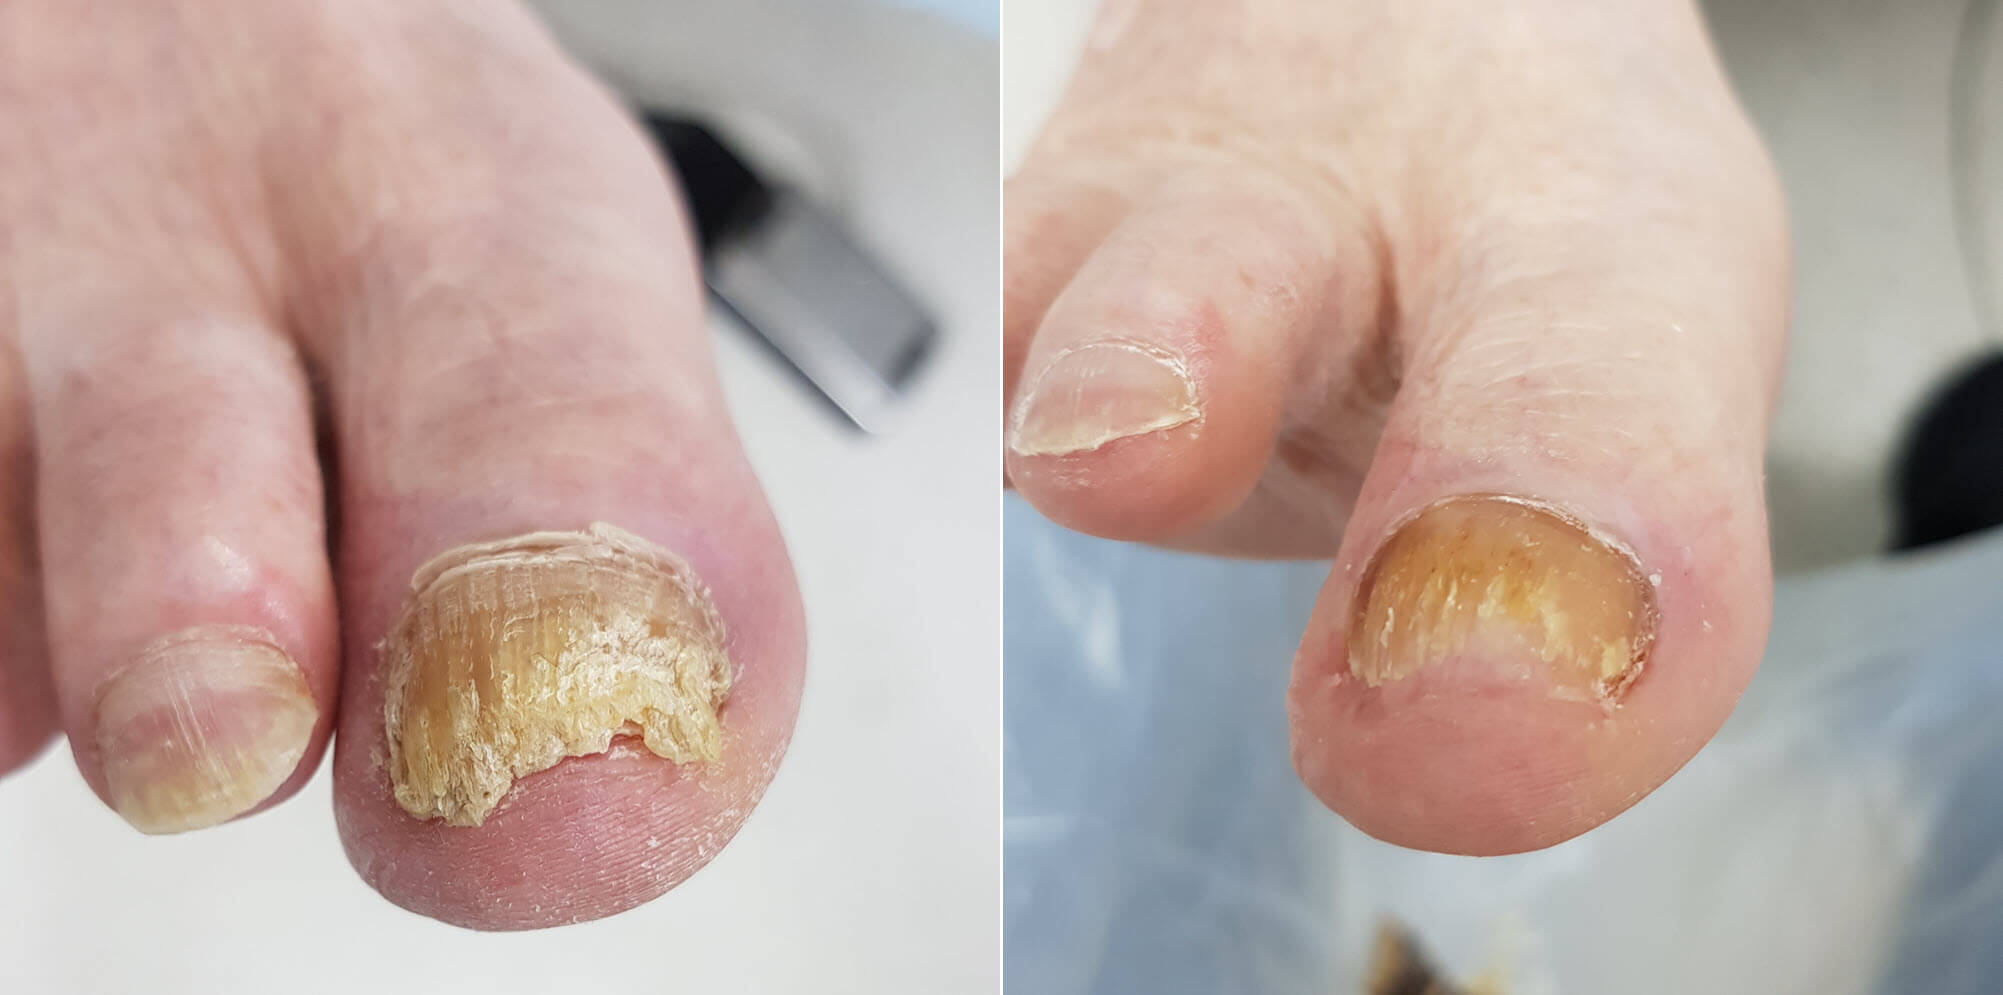 Thick fungal toenail before and after podiatry treatment